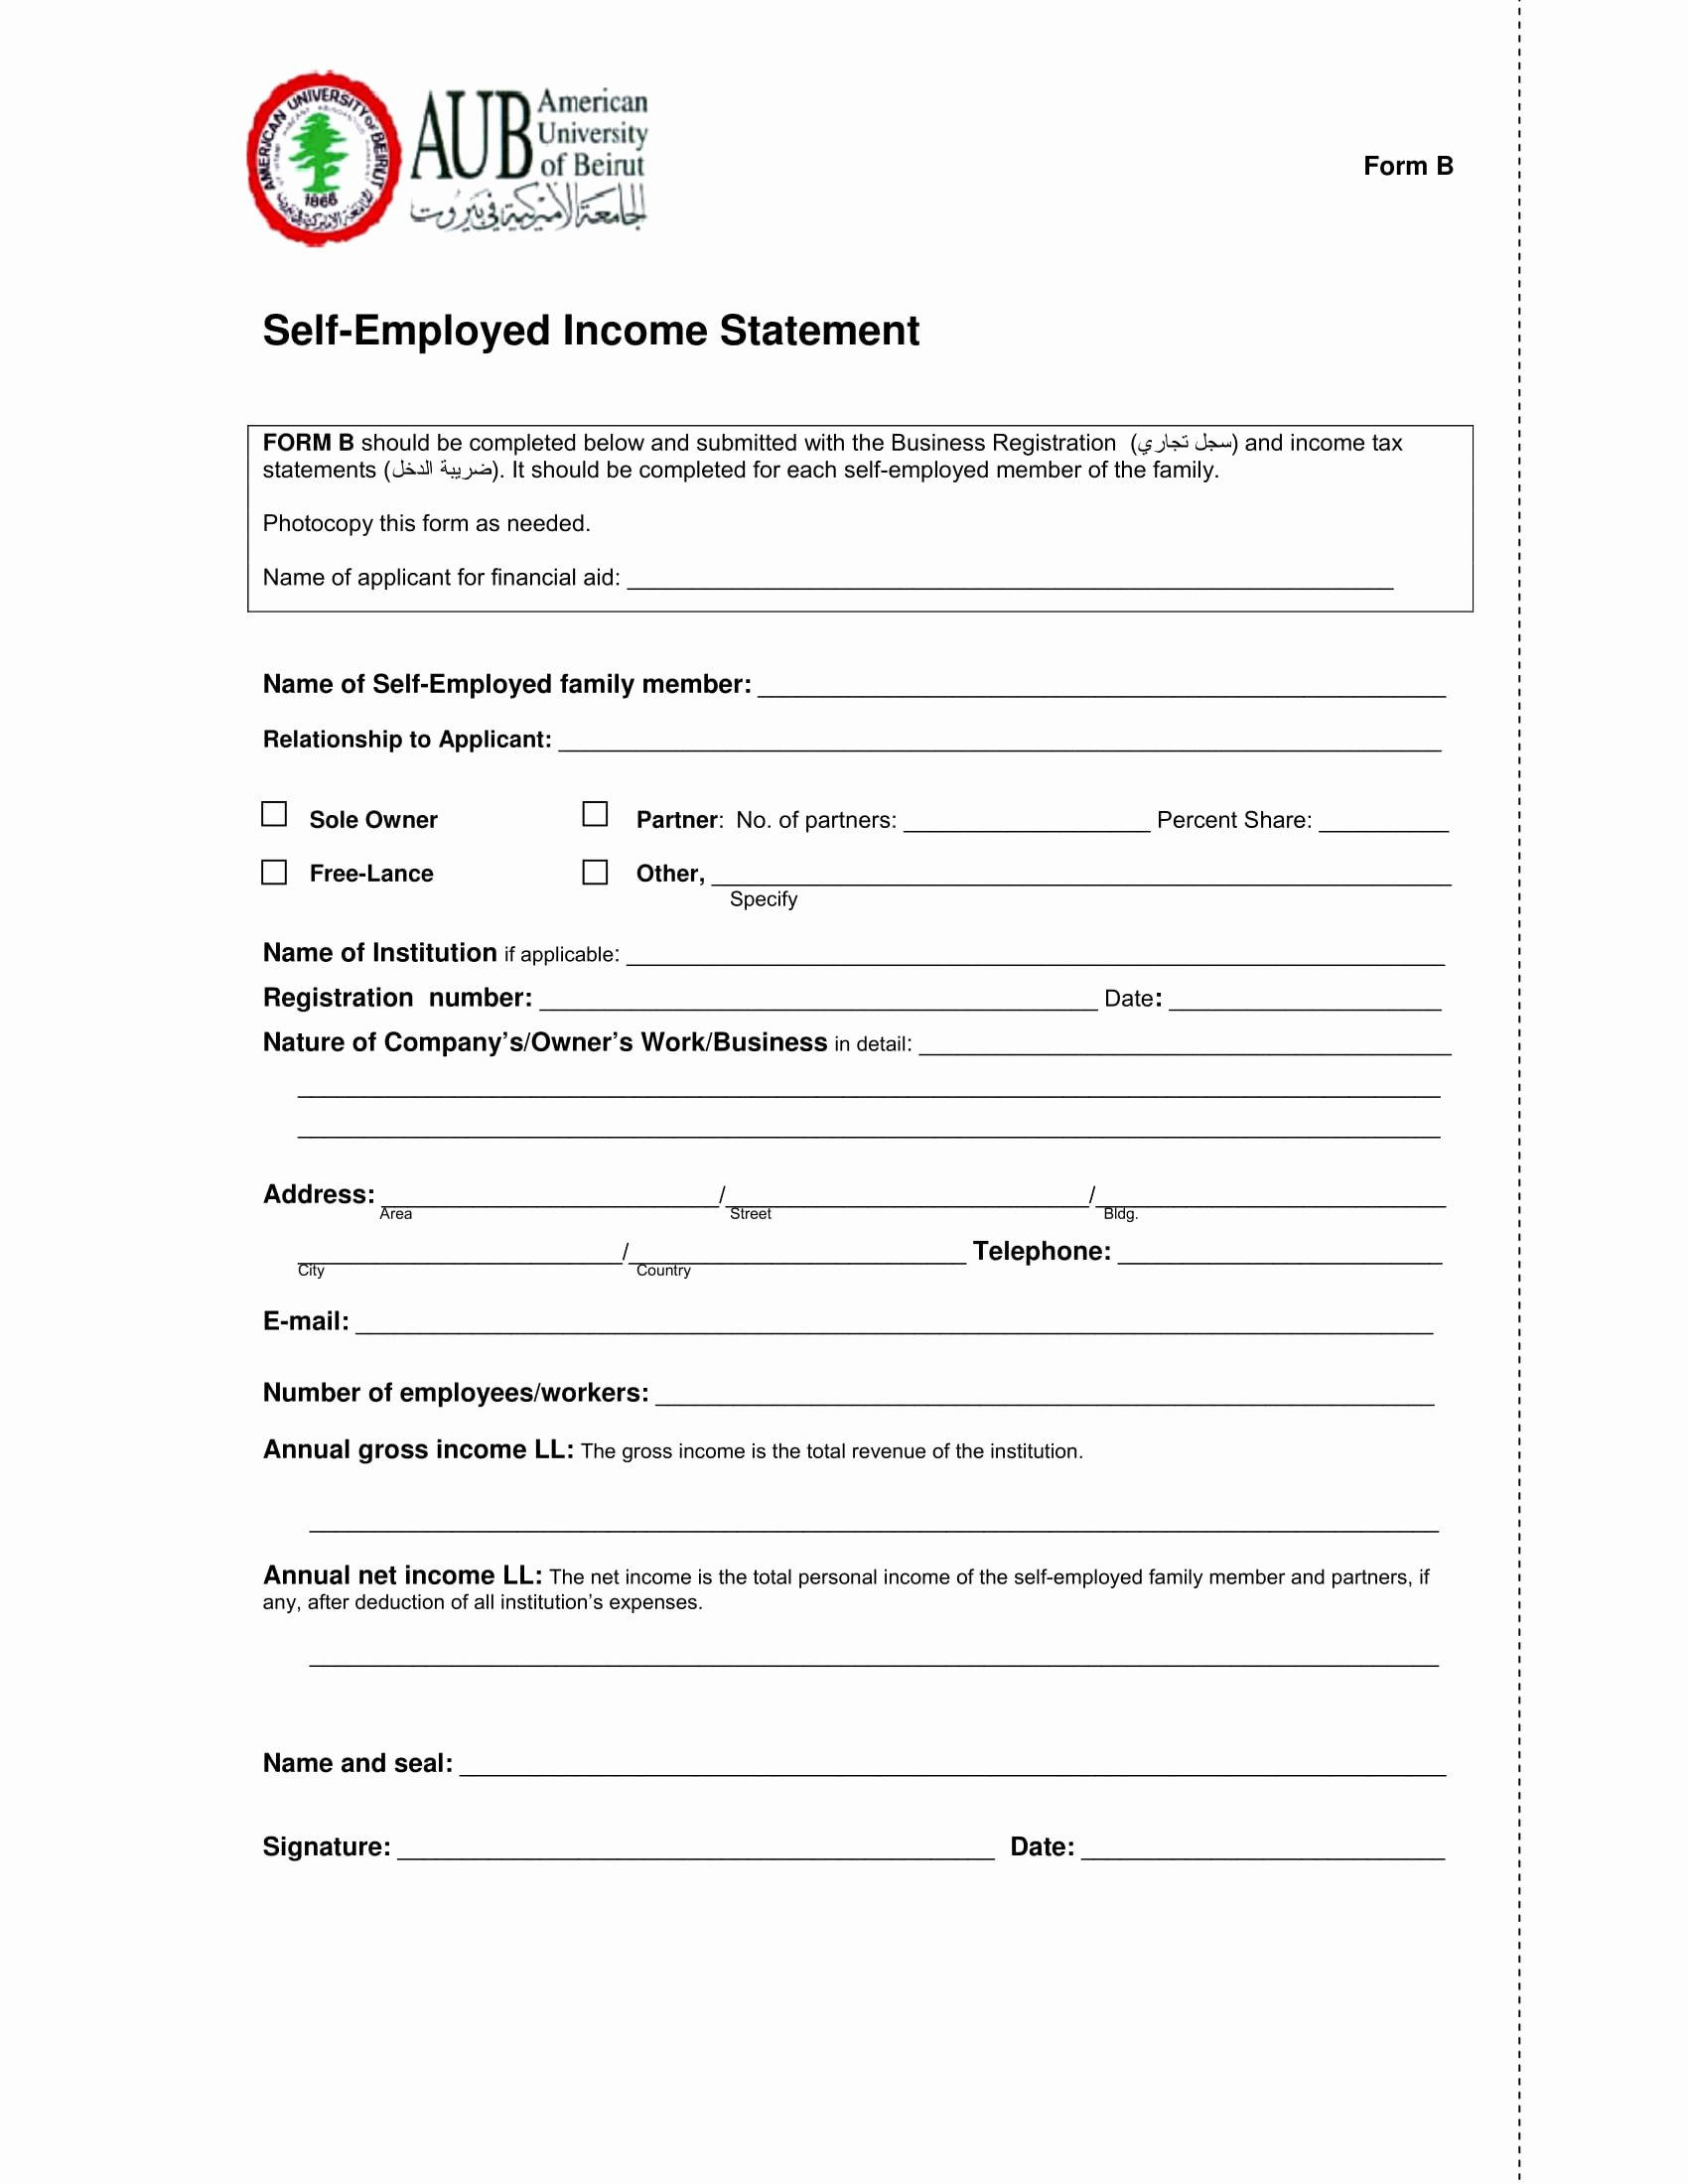 Self Employment Income Statement Template Awesome 29 In E Statement form Samples